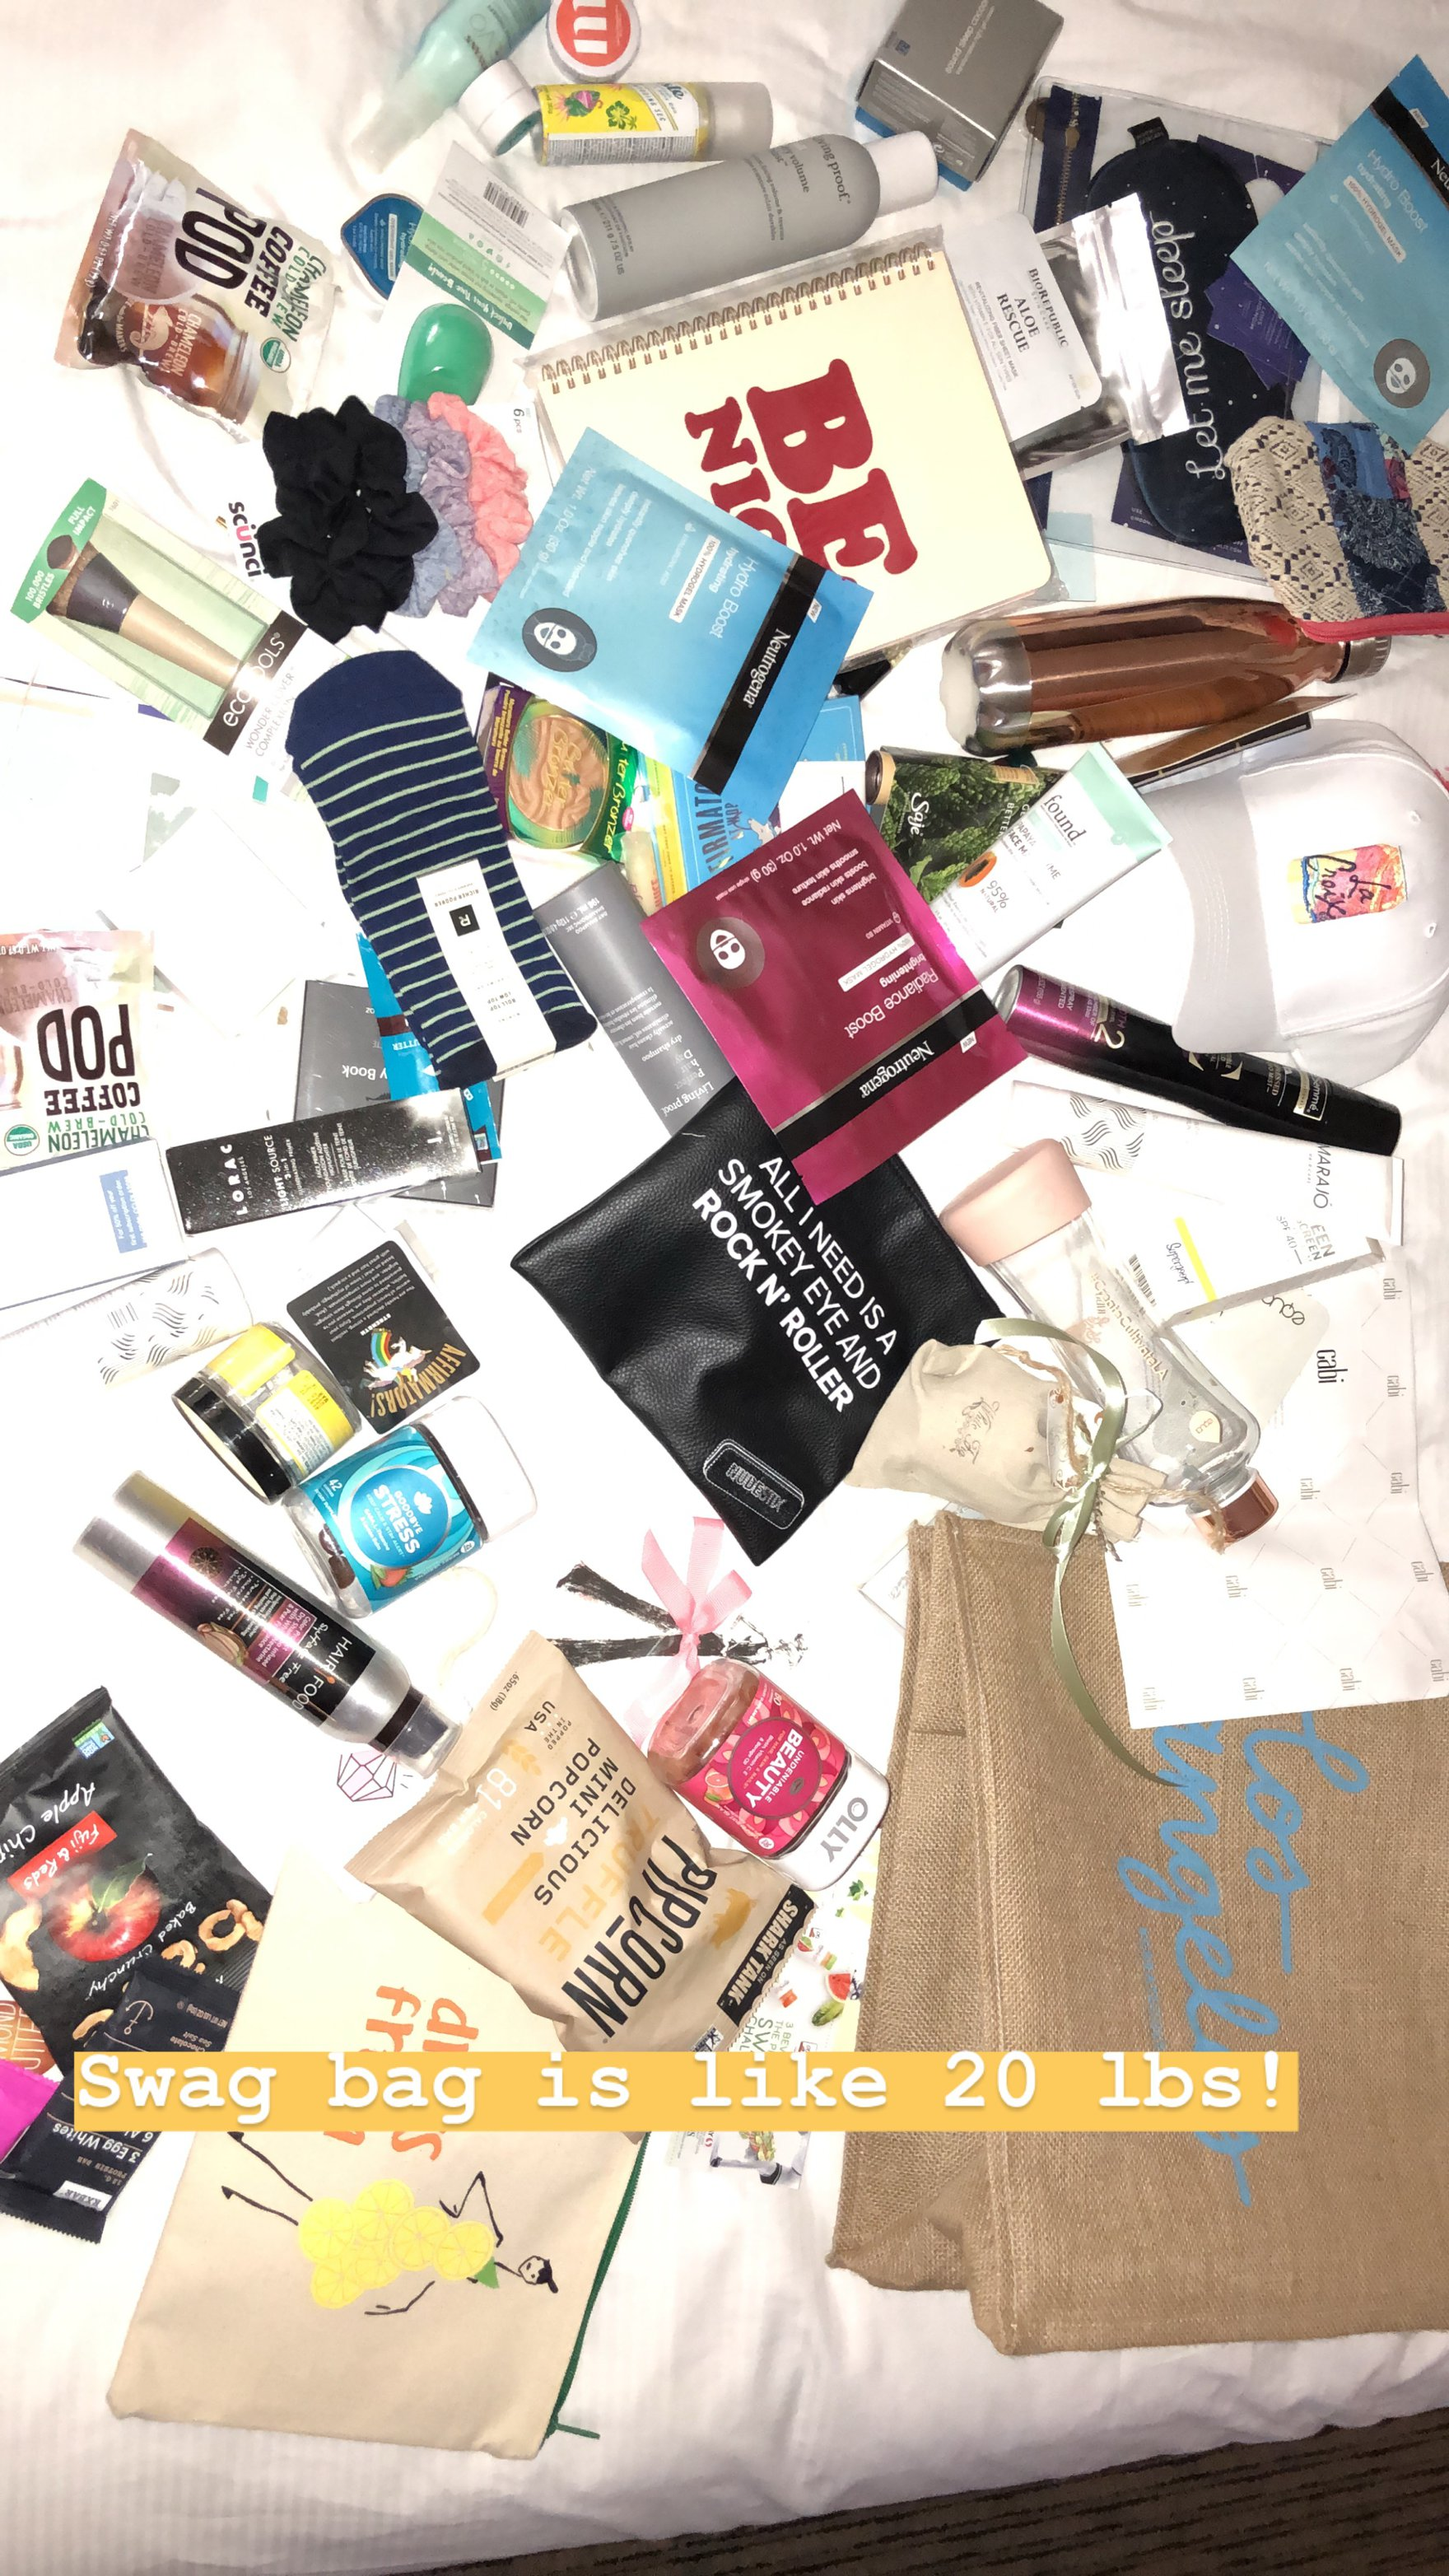 swag bag for blogger influencer conference create and cultivate Los Angeles 2018